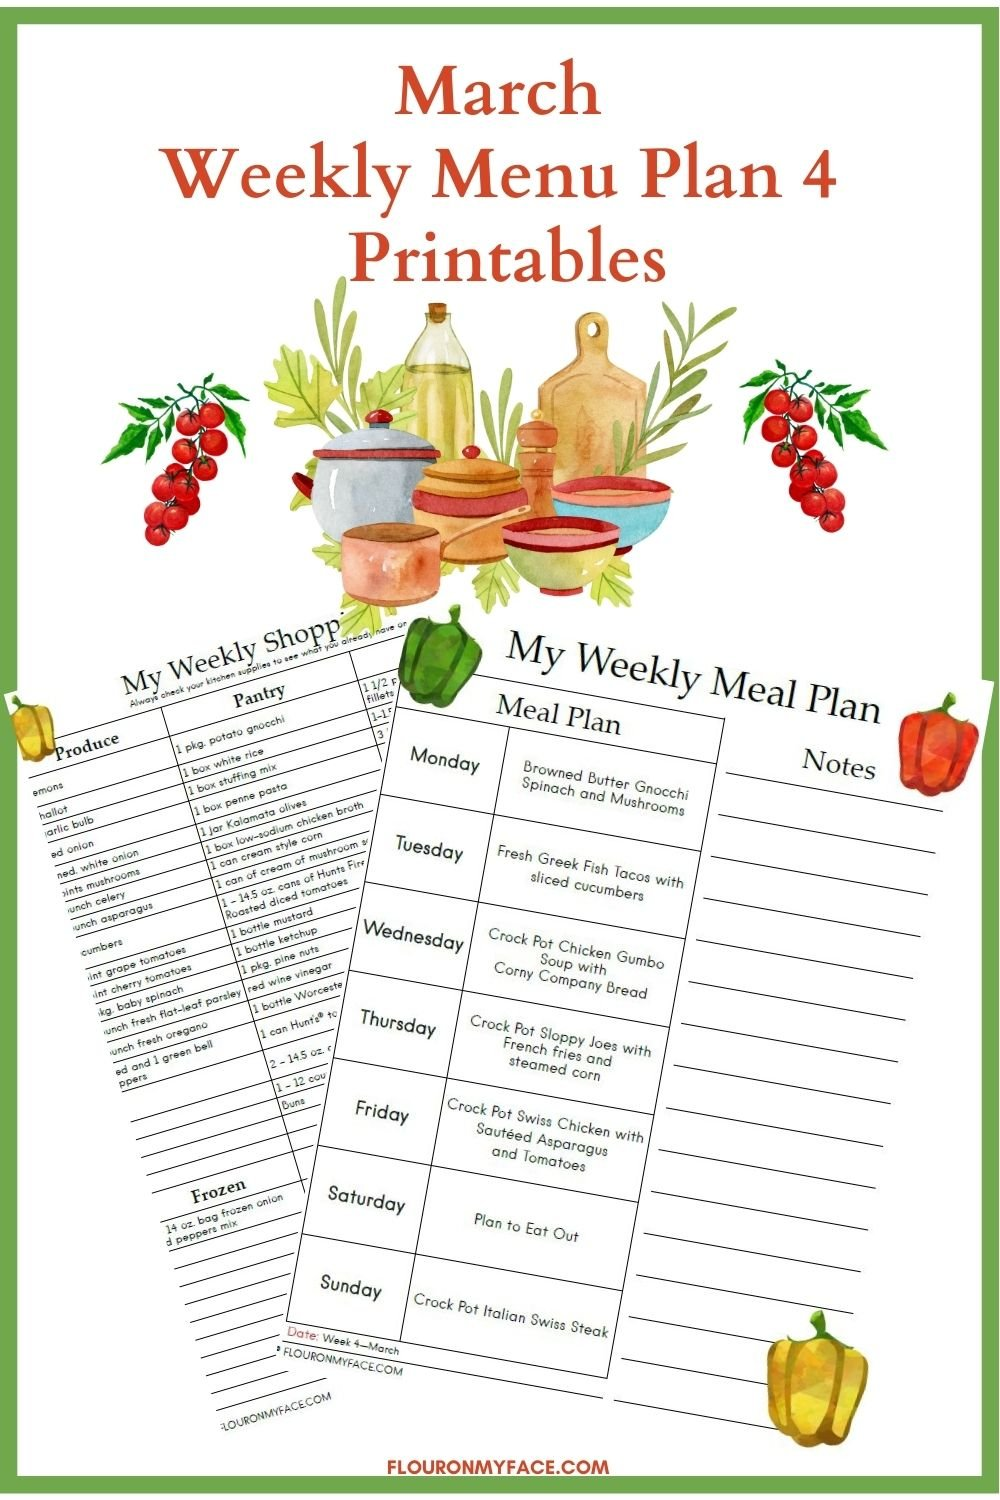 March meal plan printable preview image.